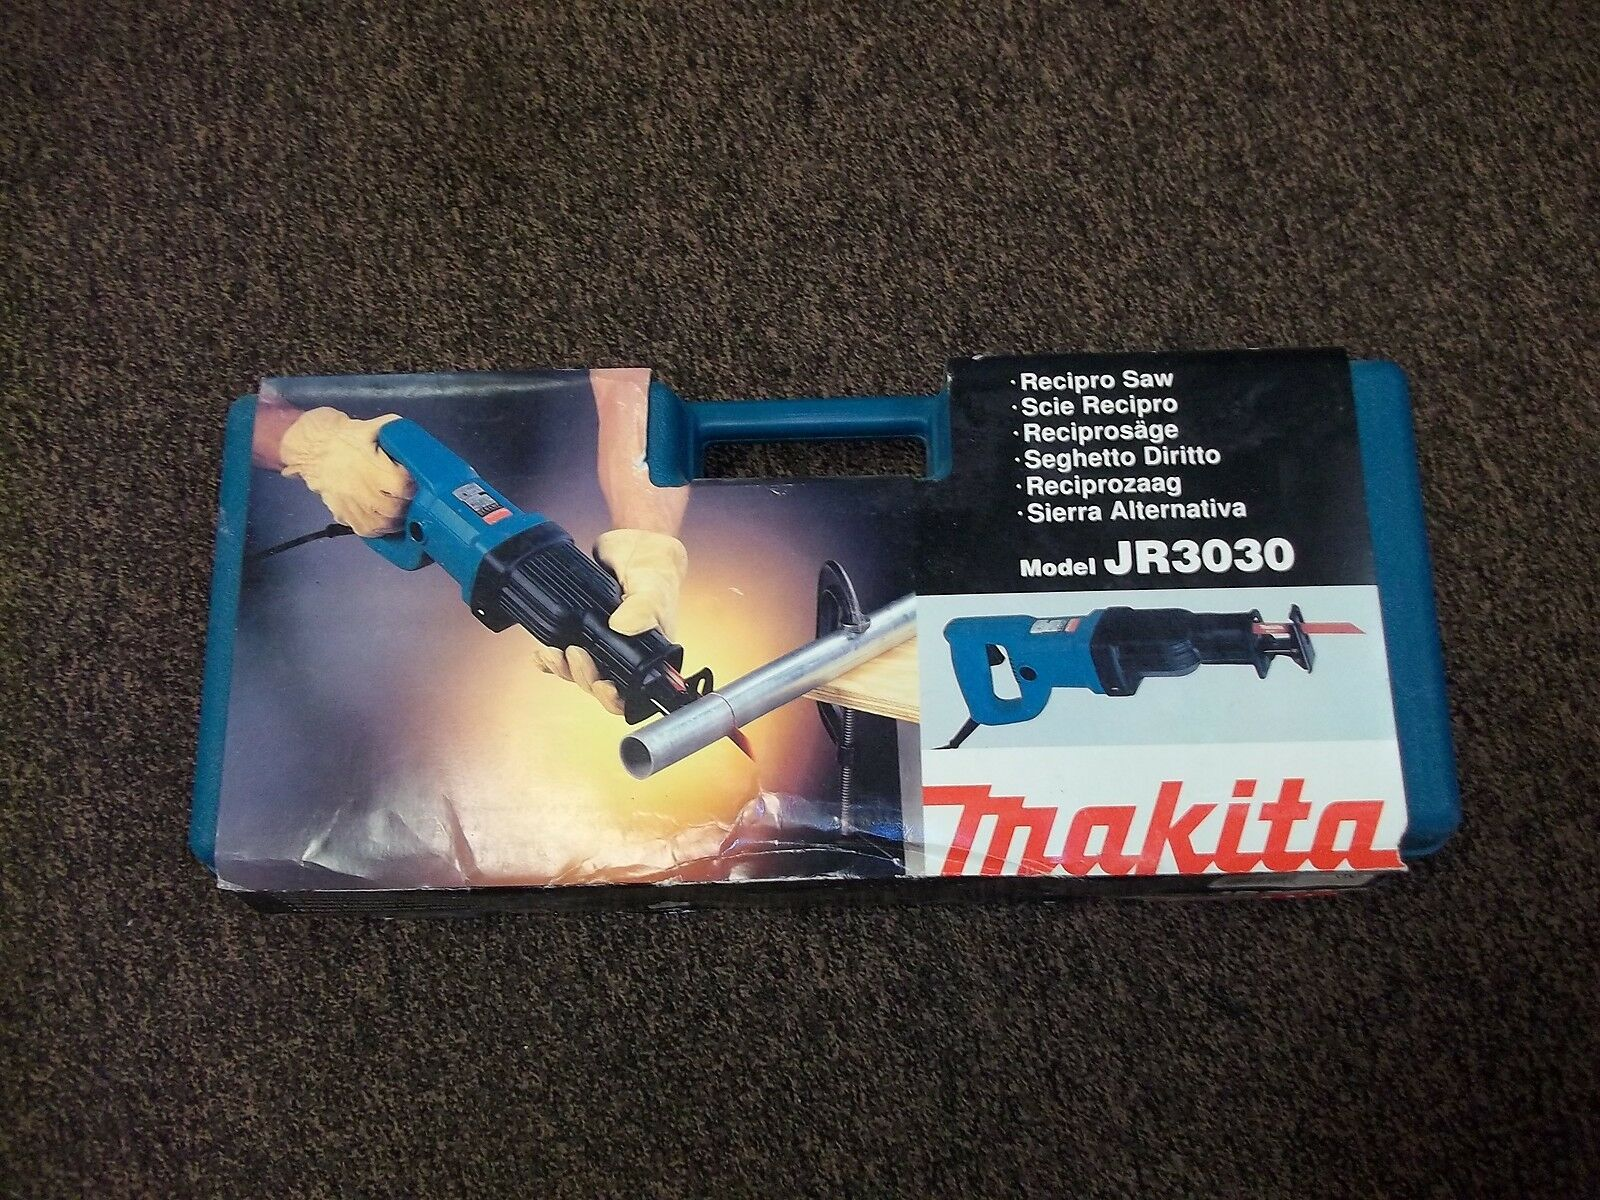 Makita Reciprocating Saw -Model JR3030 Orbital Corded Reciprocating Saw